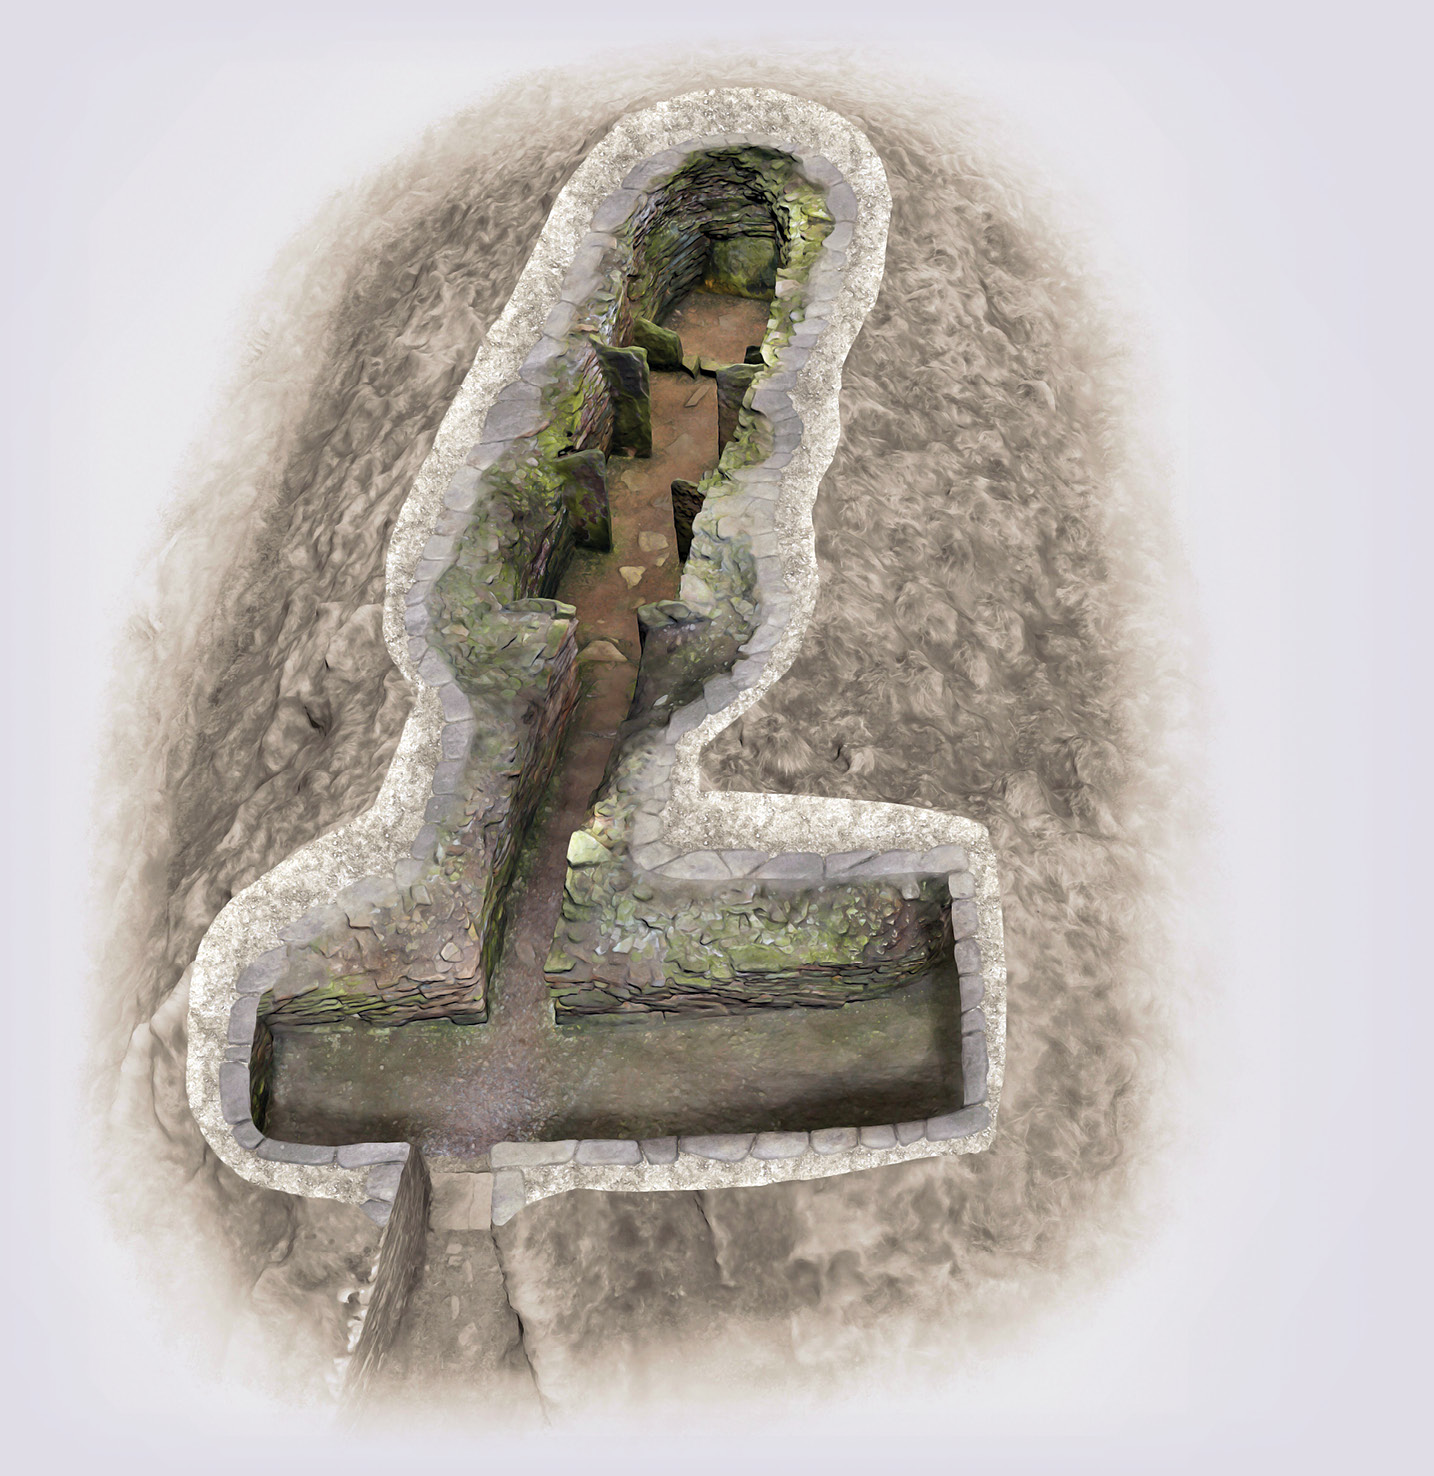 left A digital image of the Knowe of Yarso, which has been re-worked by Bob Marshall. By removing the concrete dome covering the site, he reveals the stalled cairn beneath.